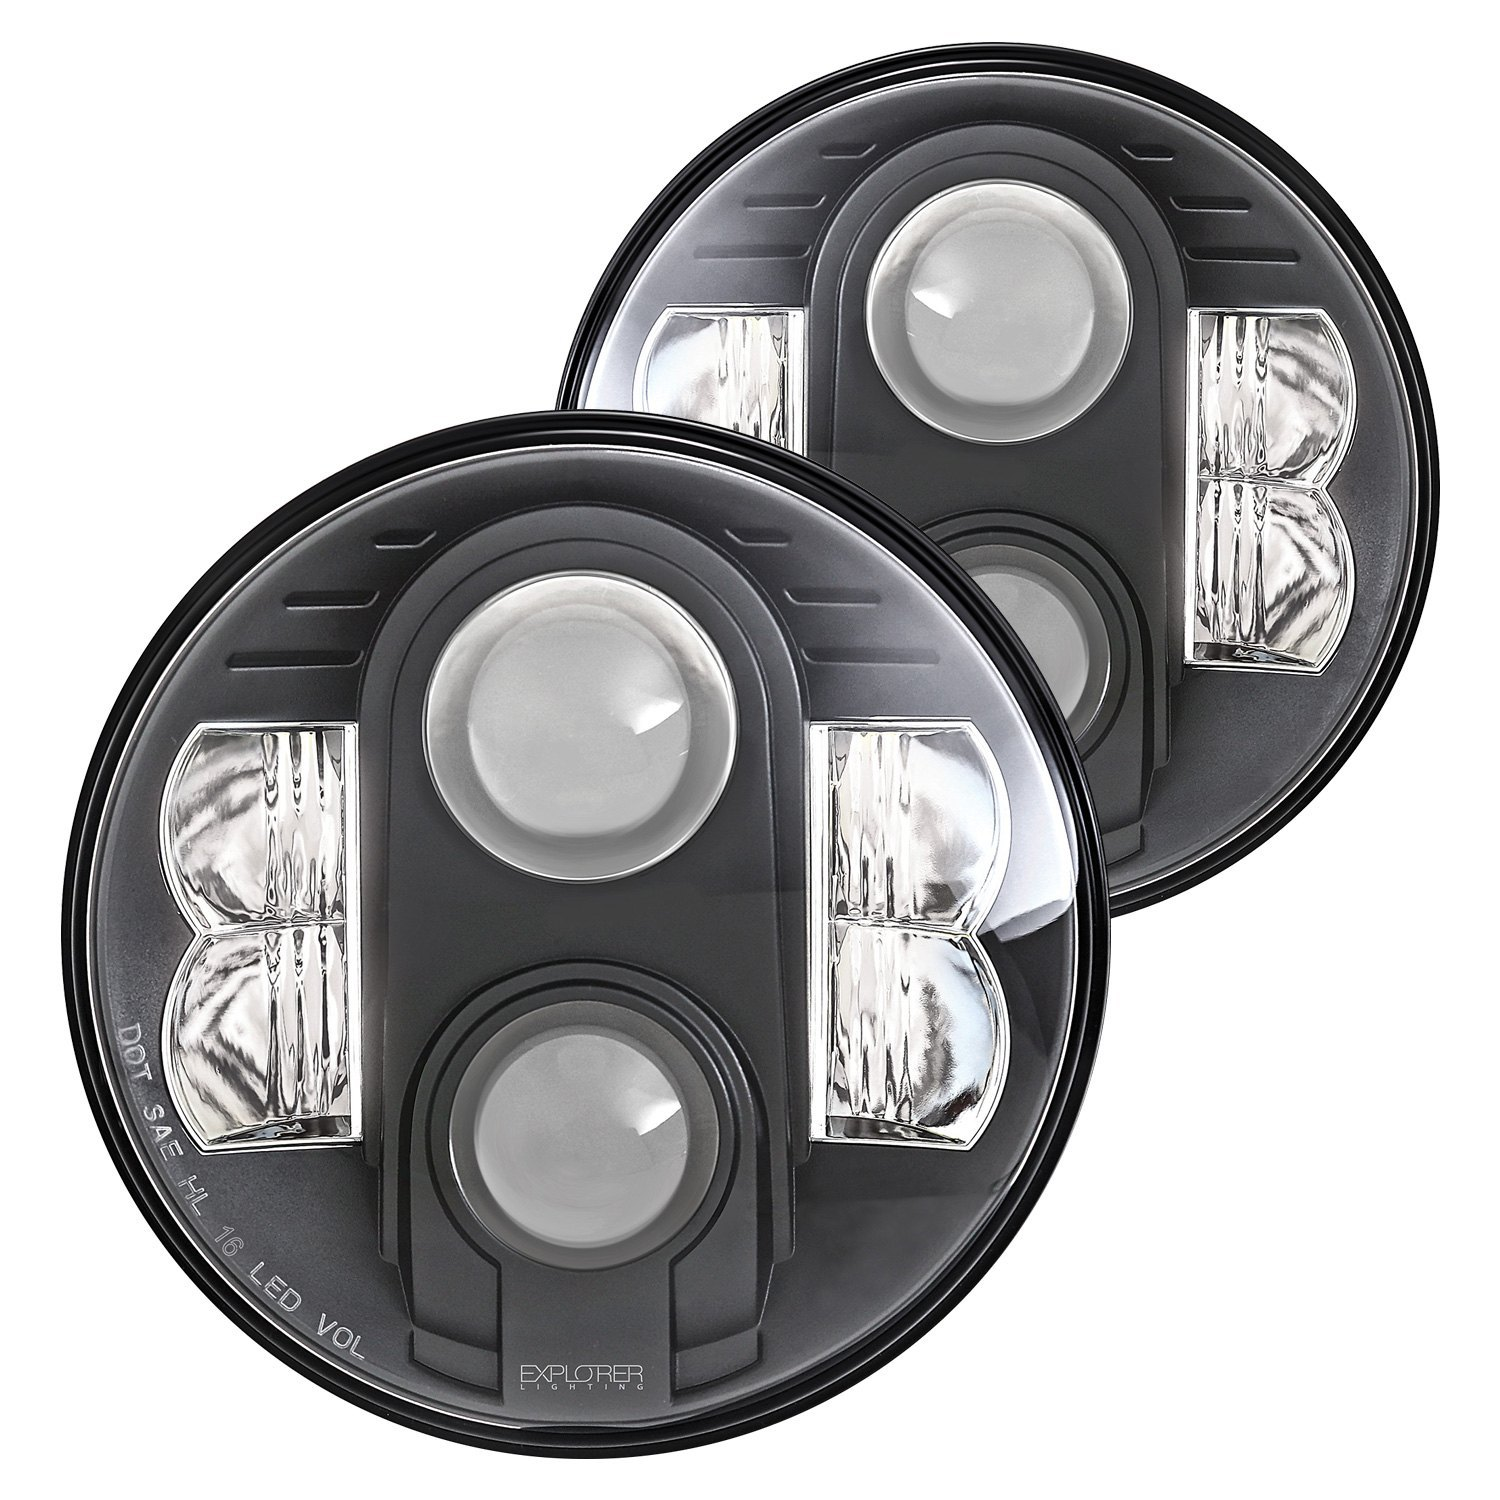 headlights for inch round honeycomb tj lj jk wrangler cj pair ralu headlight black jeep conversion products led